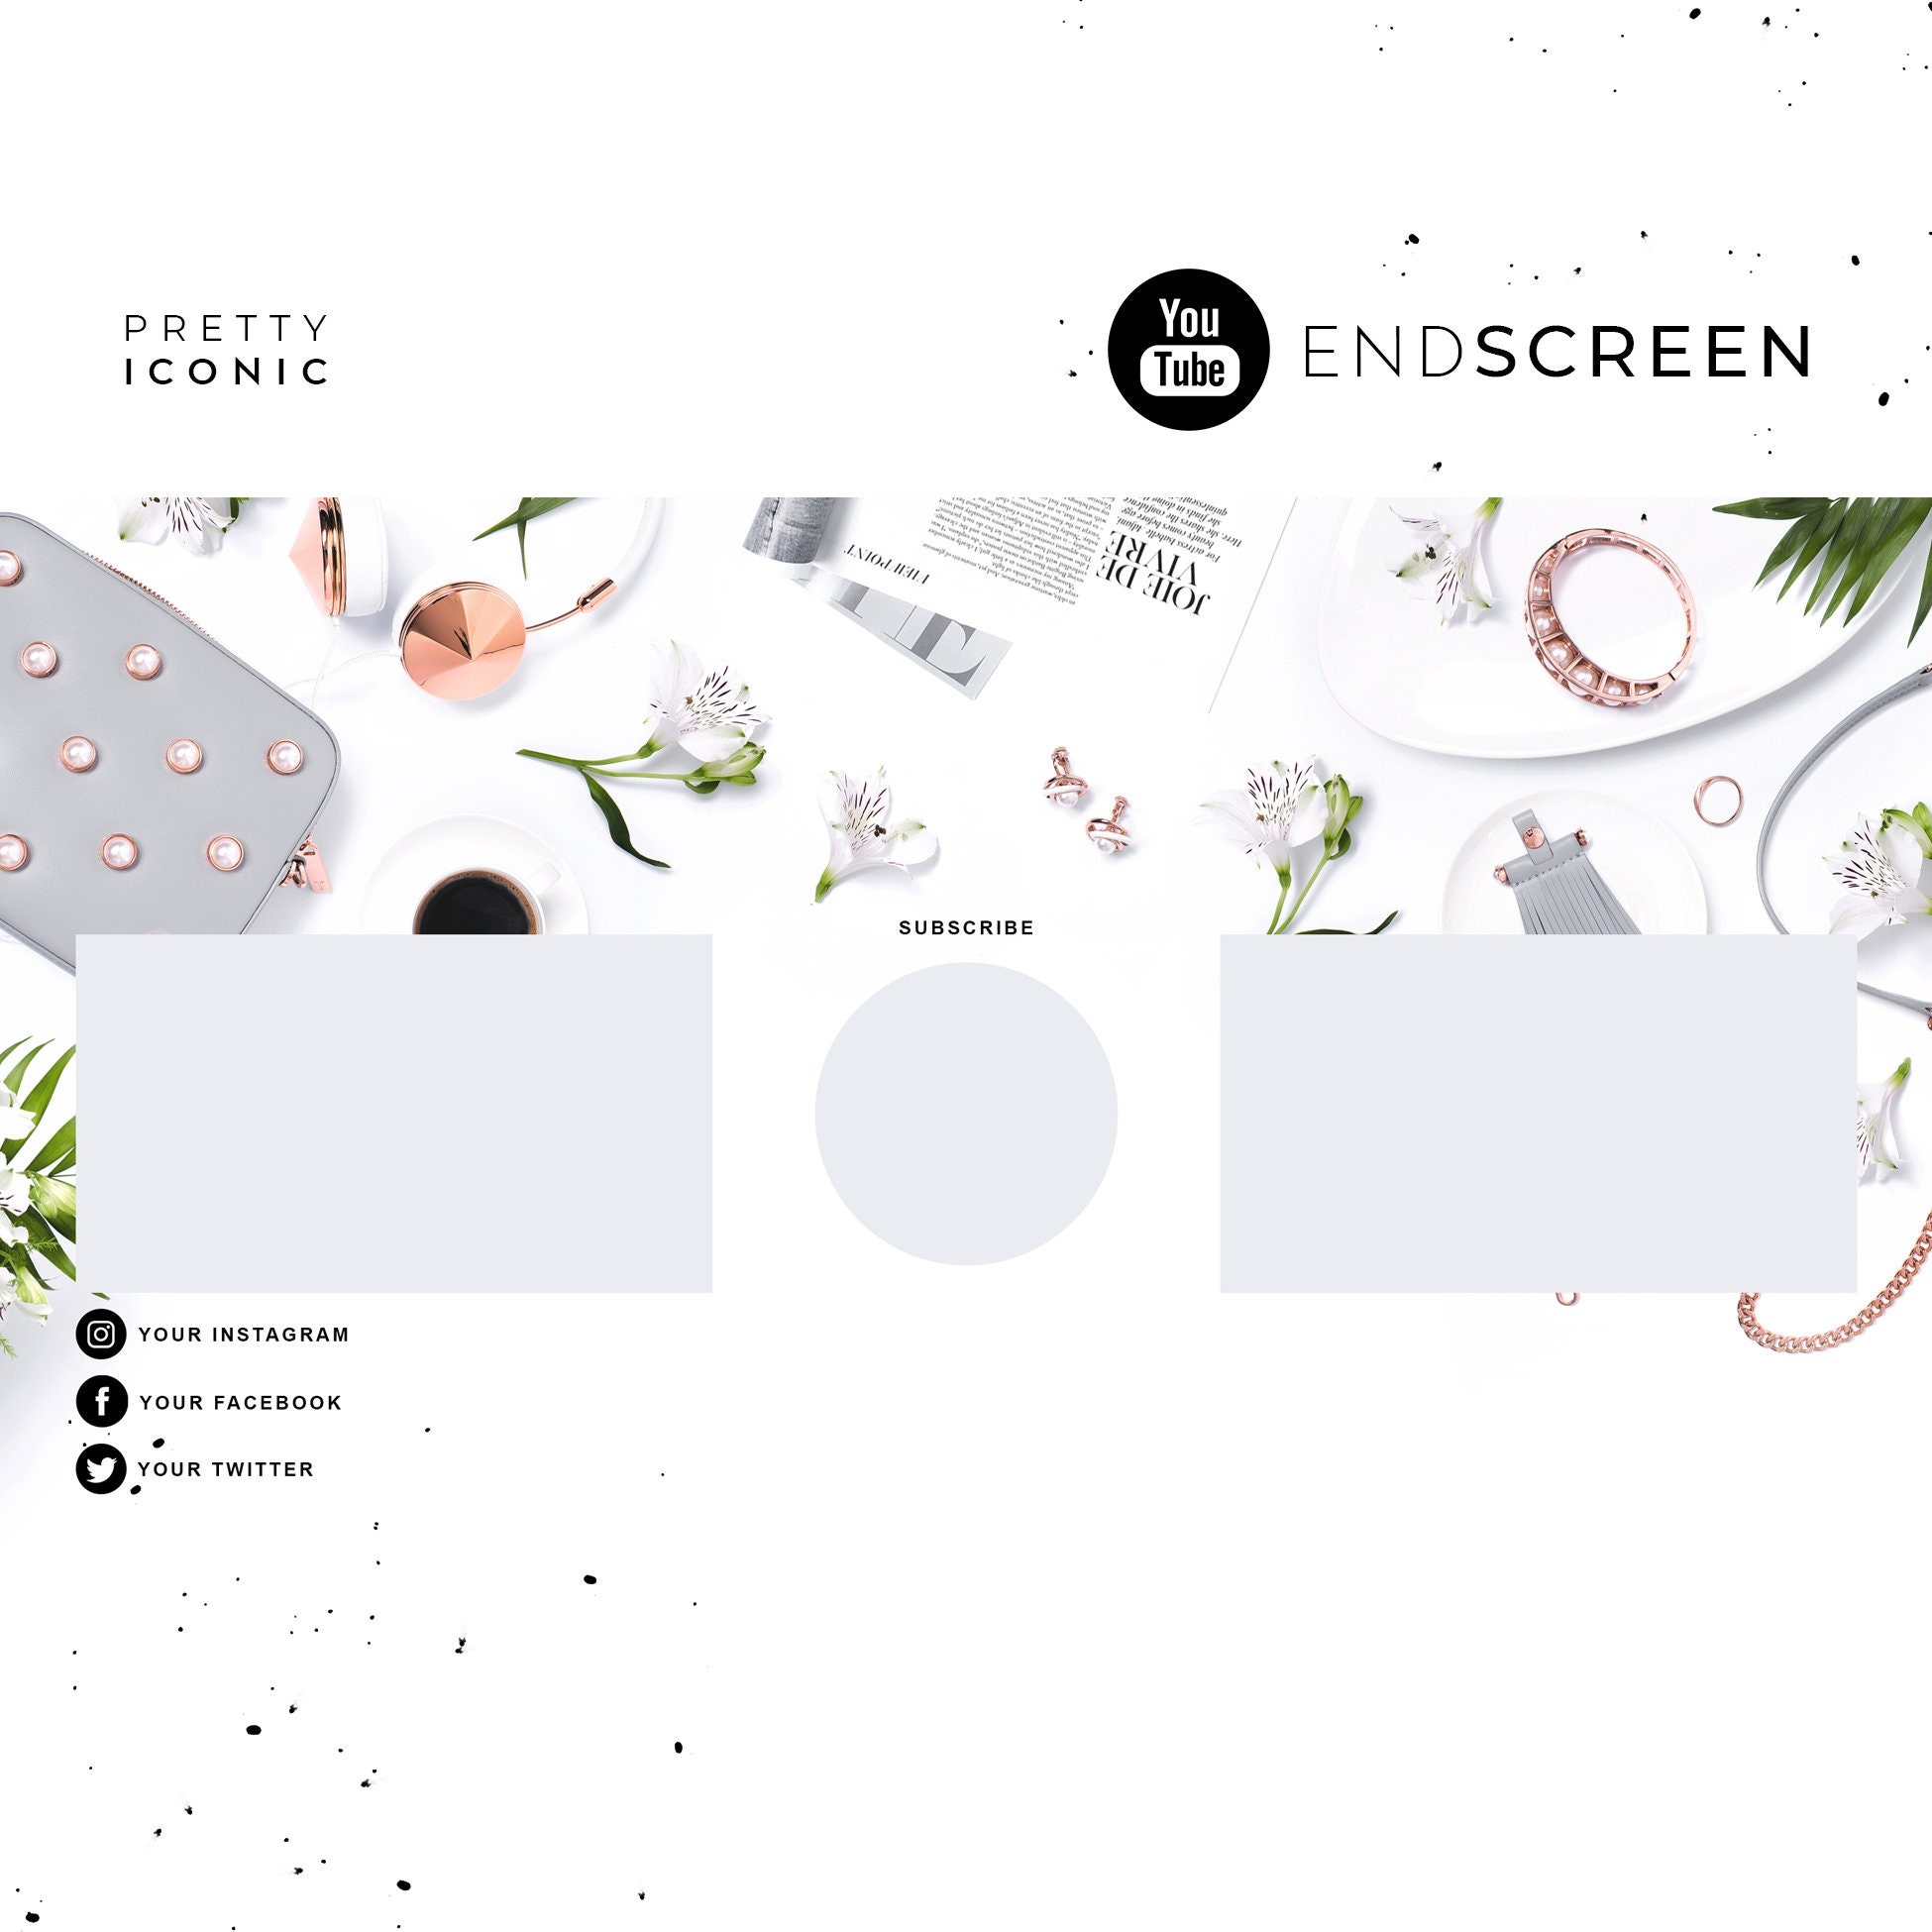 Rose Gold YouTube End Screen, Green YouTube Channel Art, Pearls You Tube  Video Outro, YouTube Vlogger Branding, YouTube Template